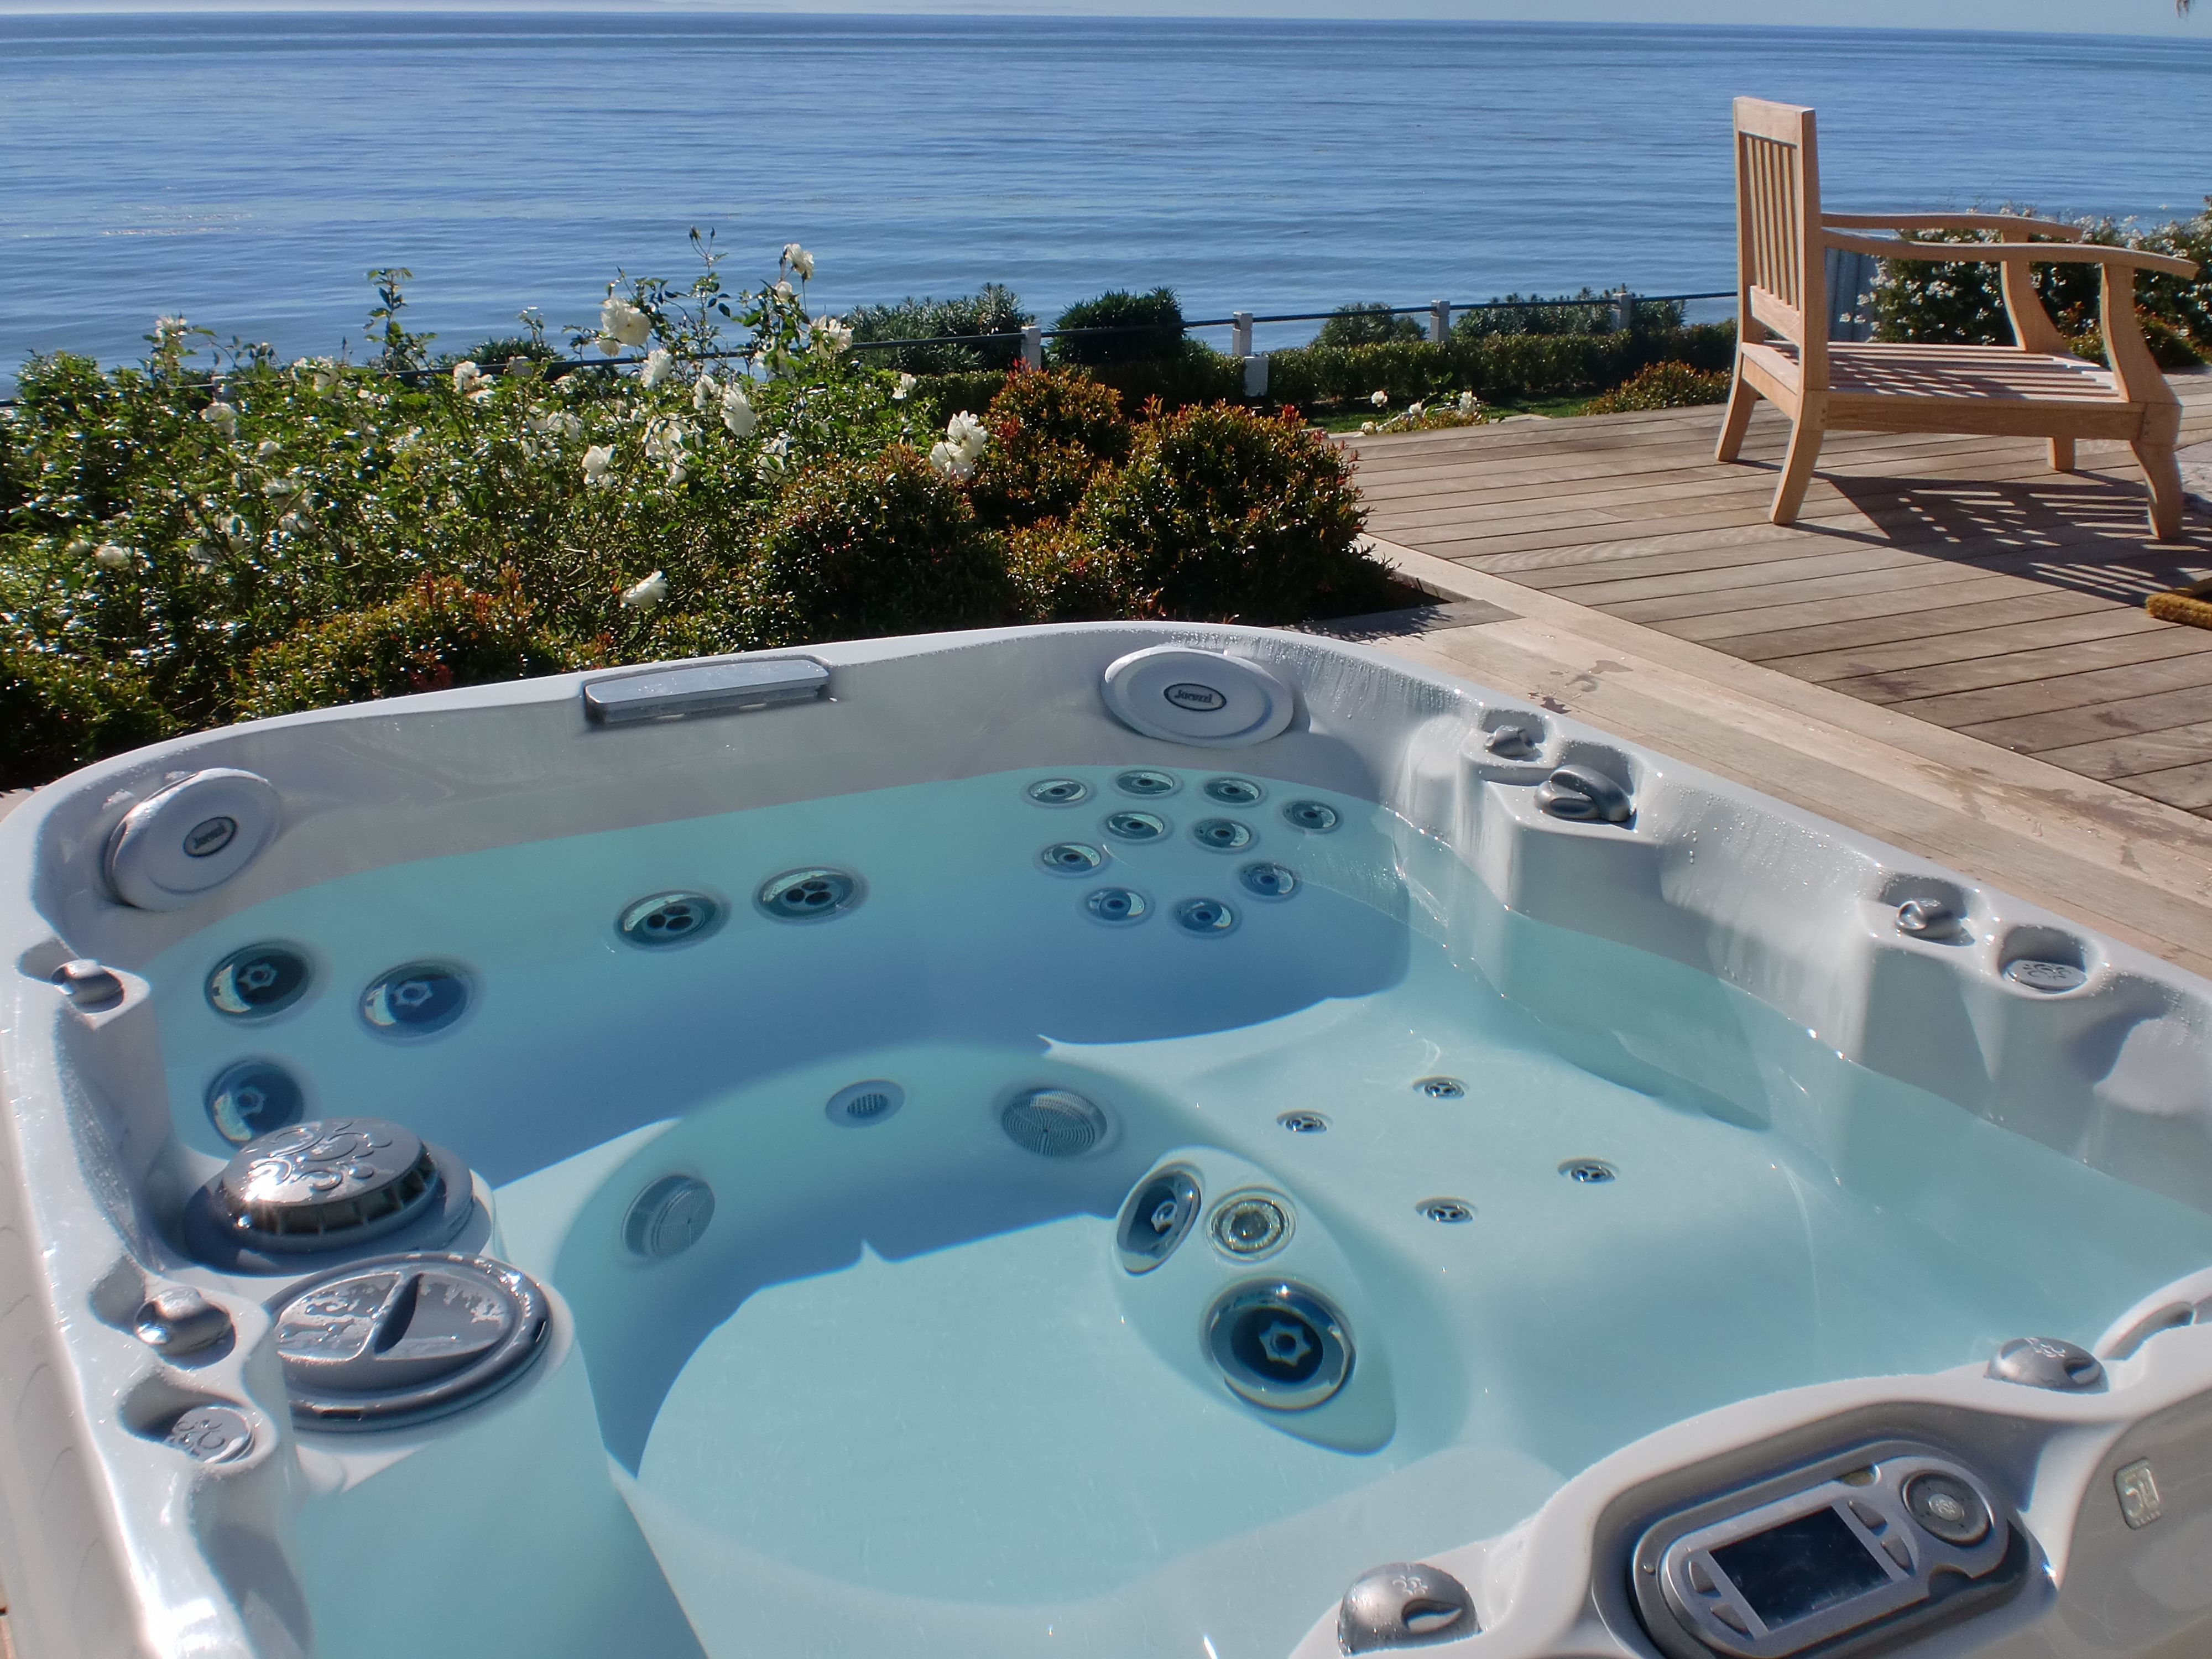 Jacuzzi J400 Series With View Of Deck With Images Jacuzzi